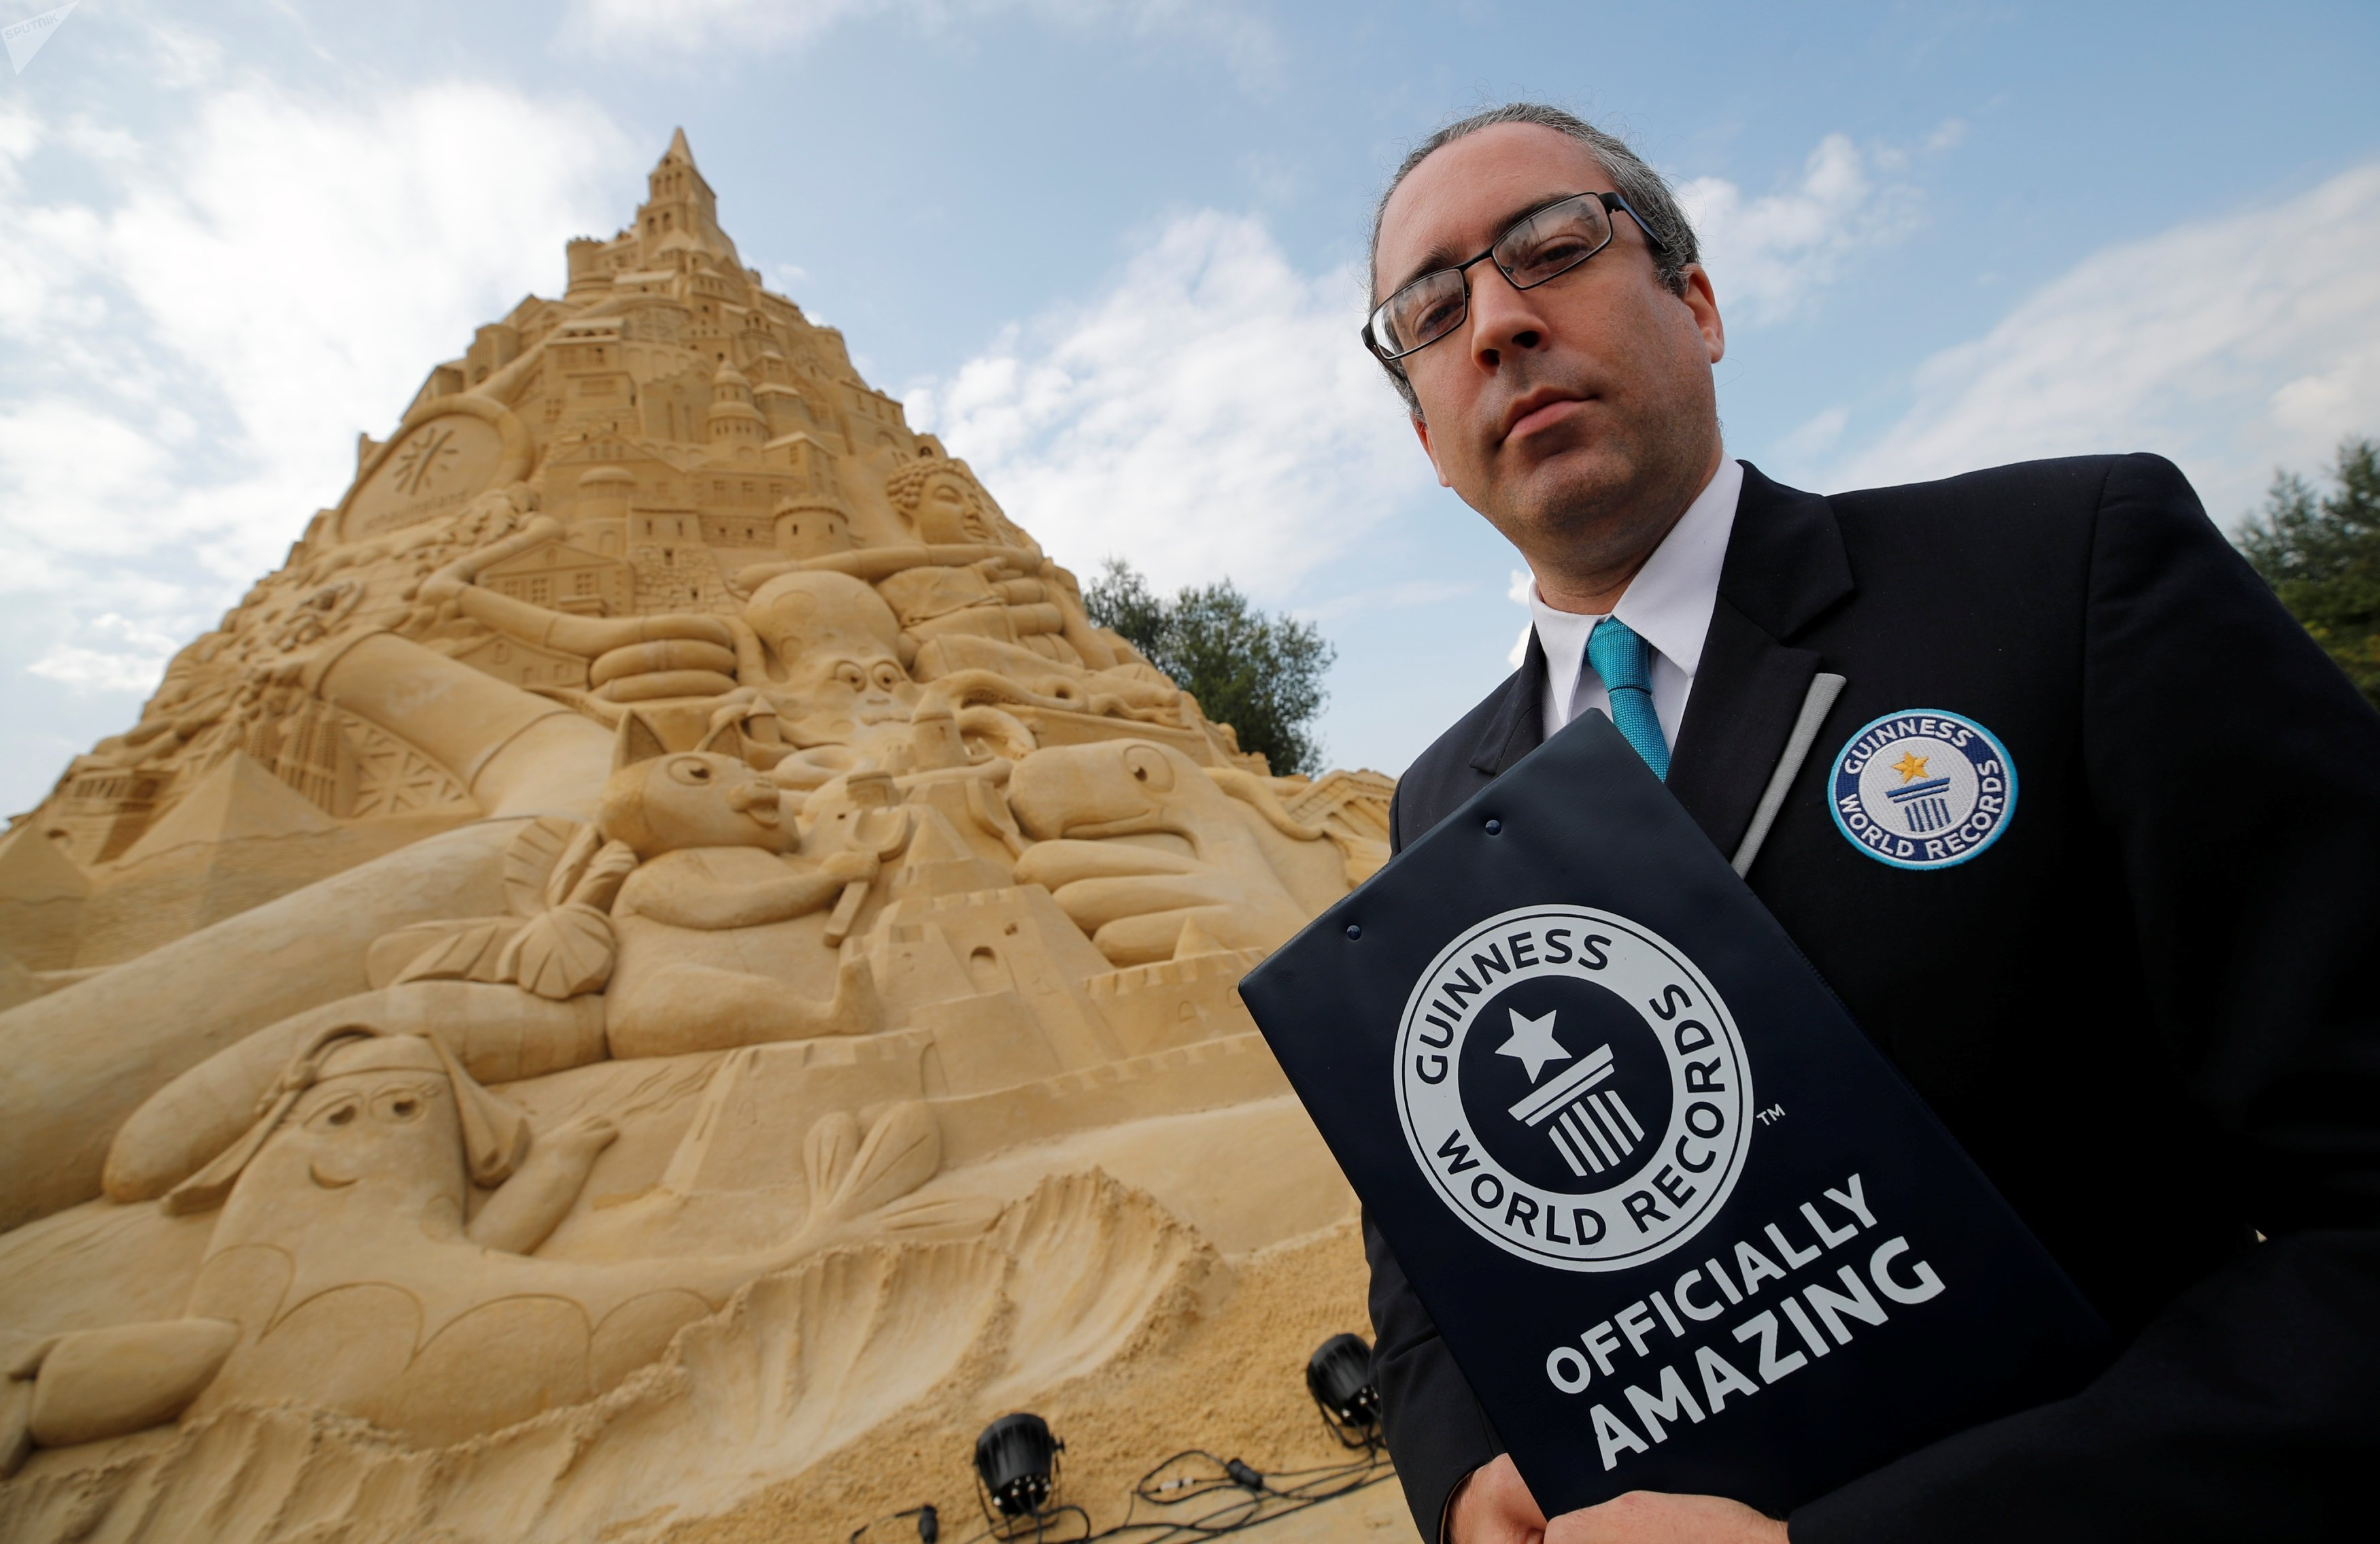 Jack Brockbank, the official judge of Guinness World Records stands next to the world's highest sandcastle (16.68 metres) in Duisburg, western Germany, September 1, 2017.